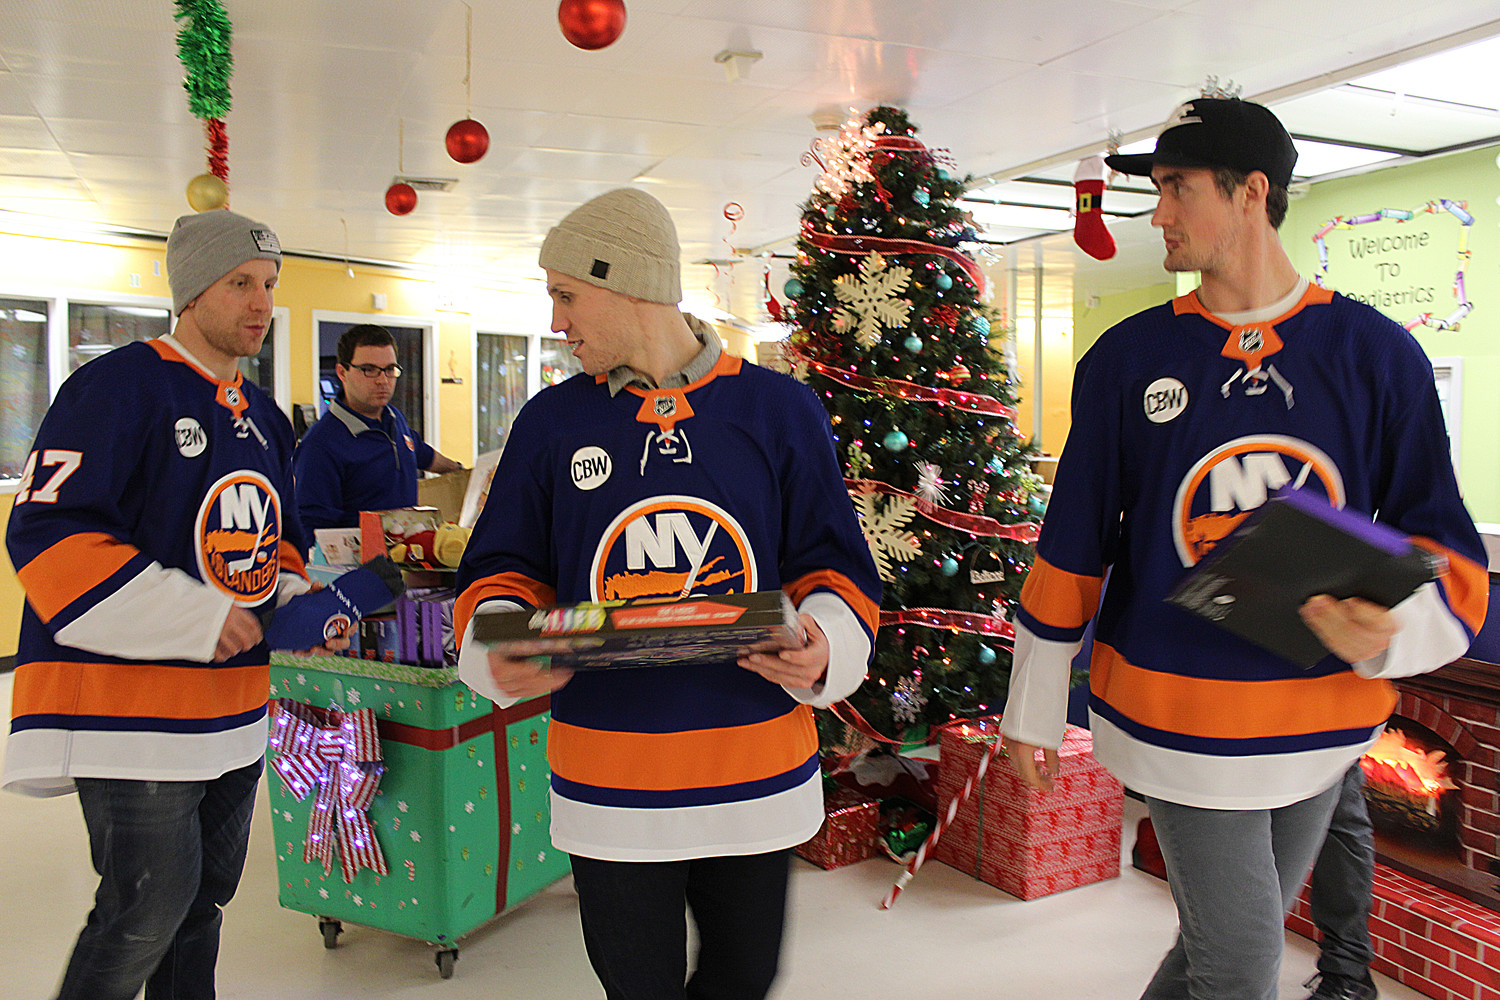 Leo Komarov, Casey Cizikas and Brock Nelson, all hockey players for the New York Islanders, spread holiday cheer throughout Nassau University Medical Center in East Meadow by giving toys and gifts to patients.